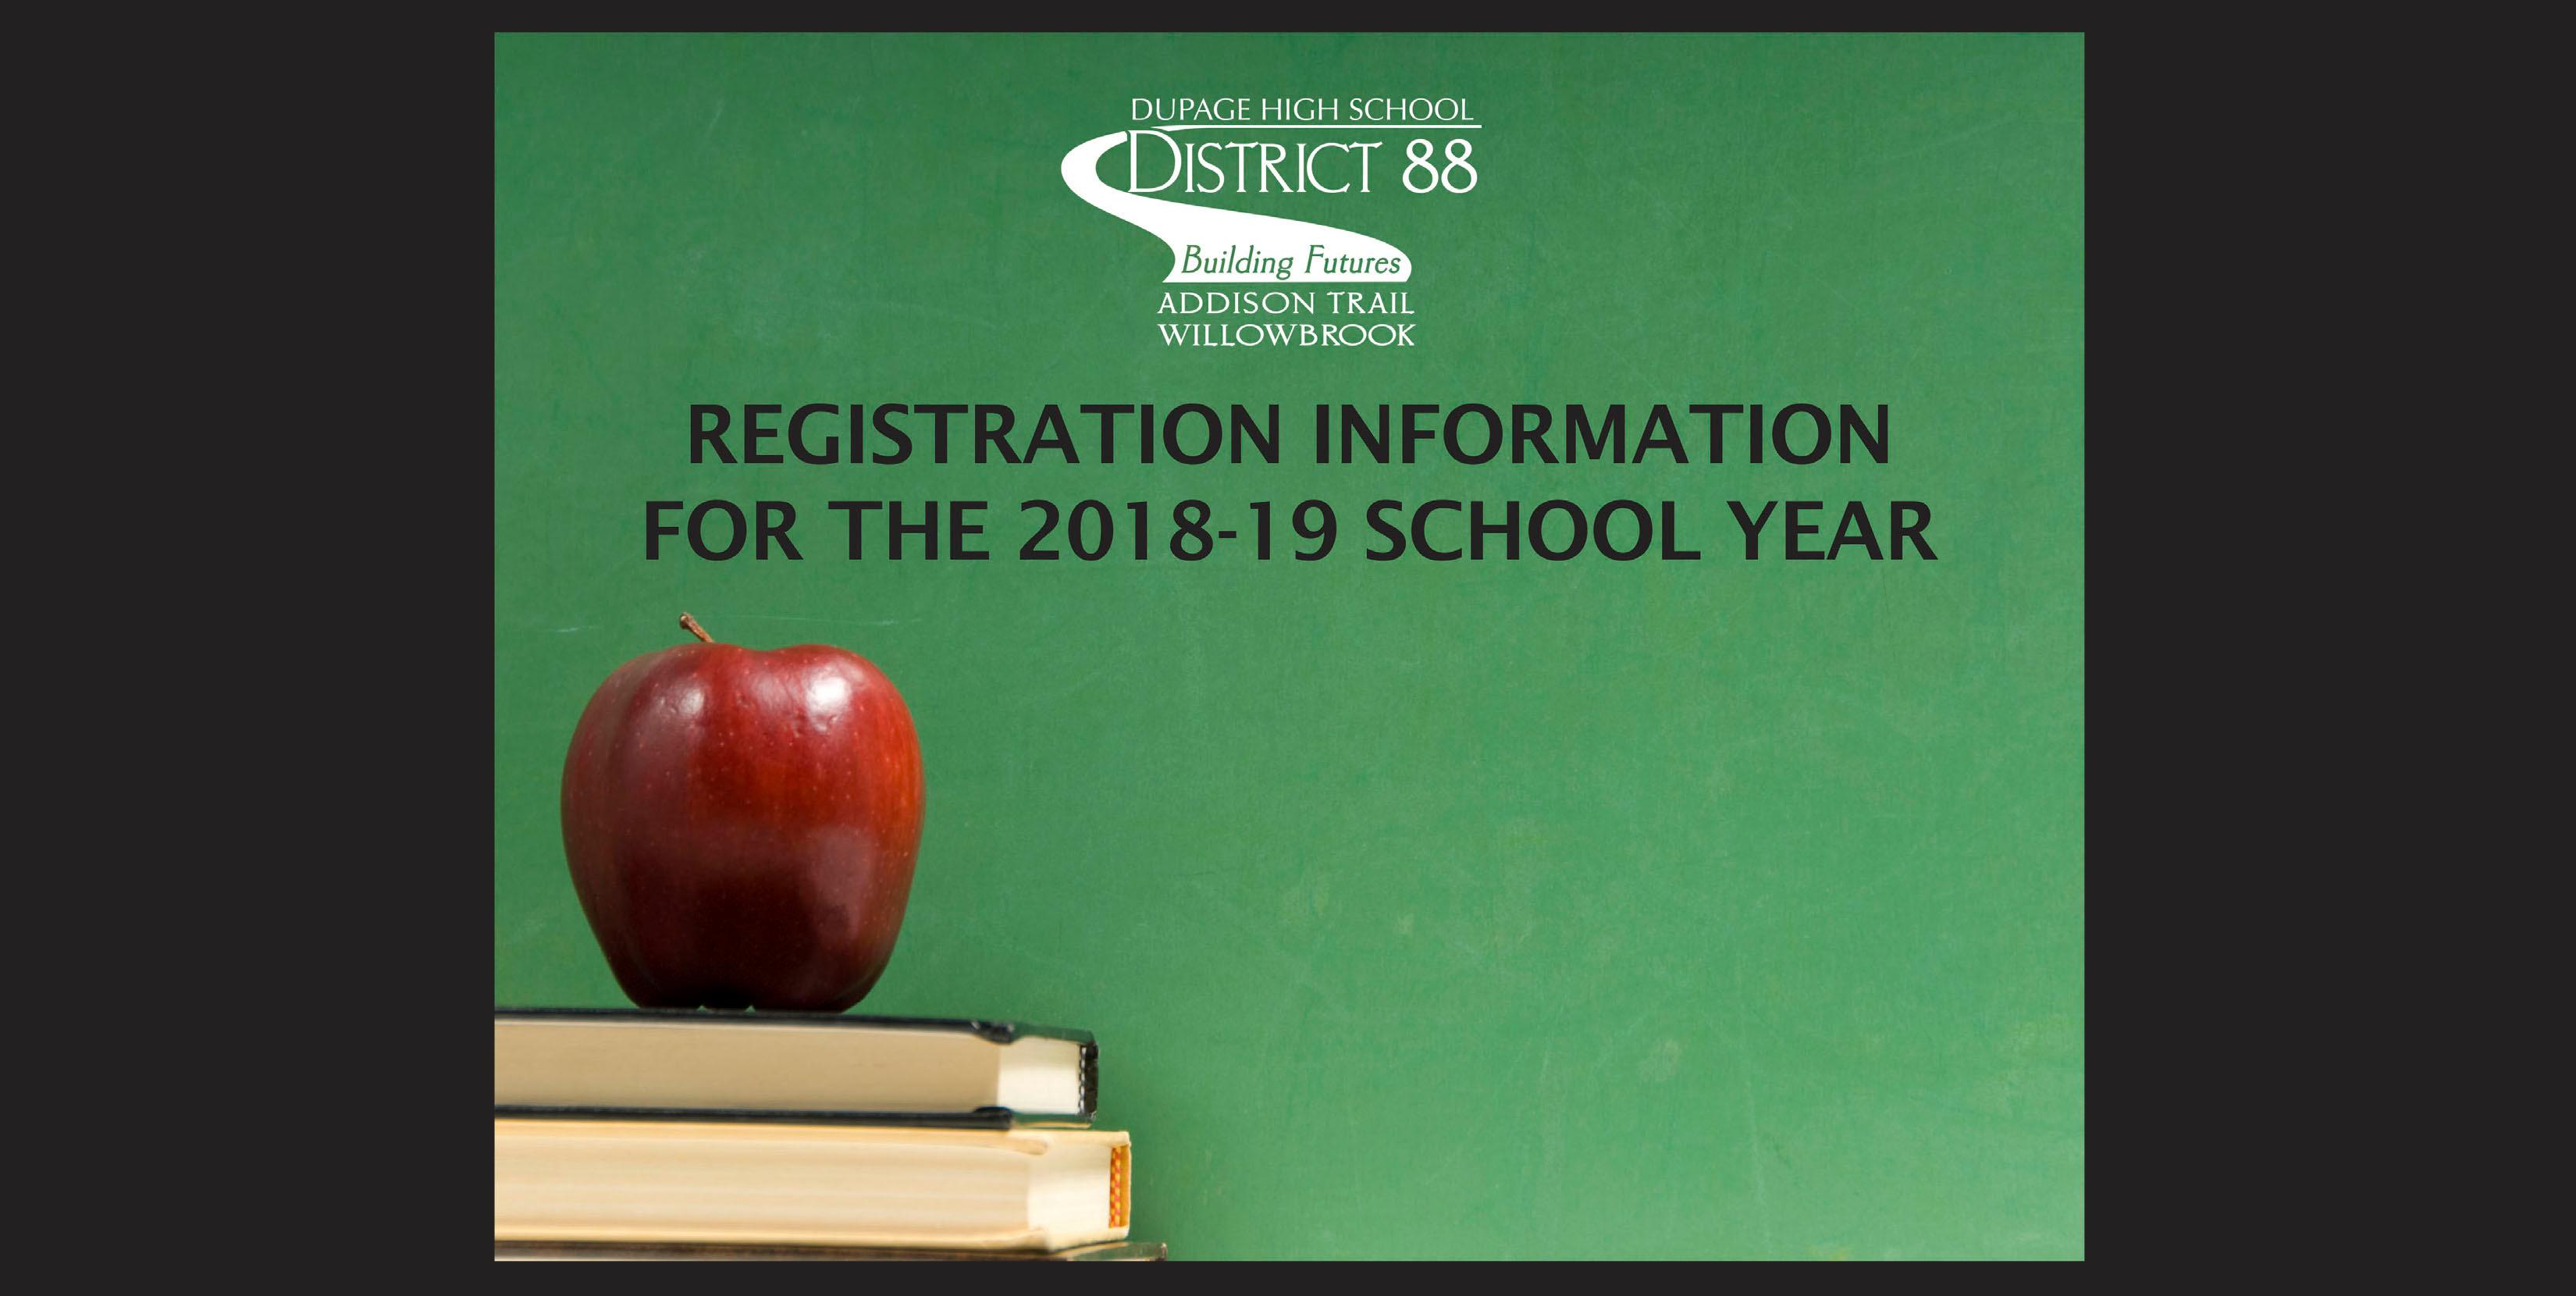 District 88 shares important information regarding registration for the 2018-19 school year